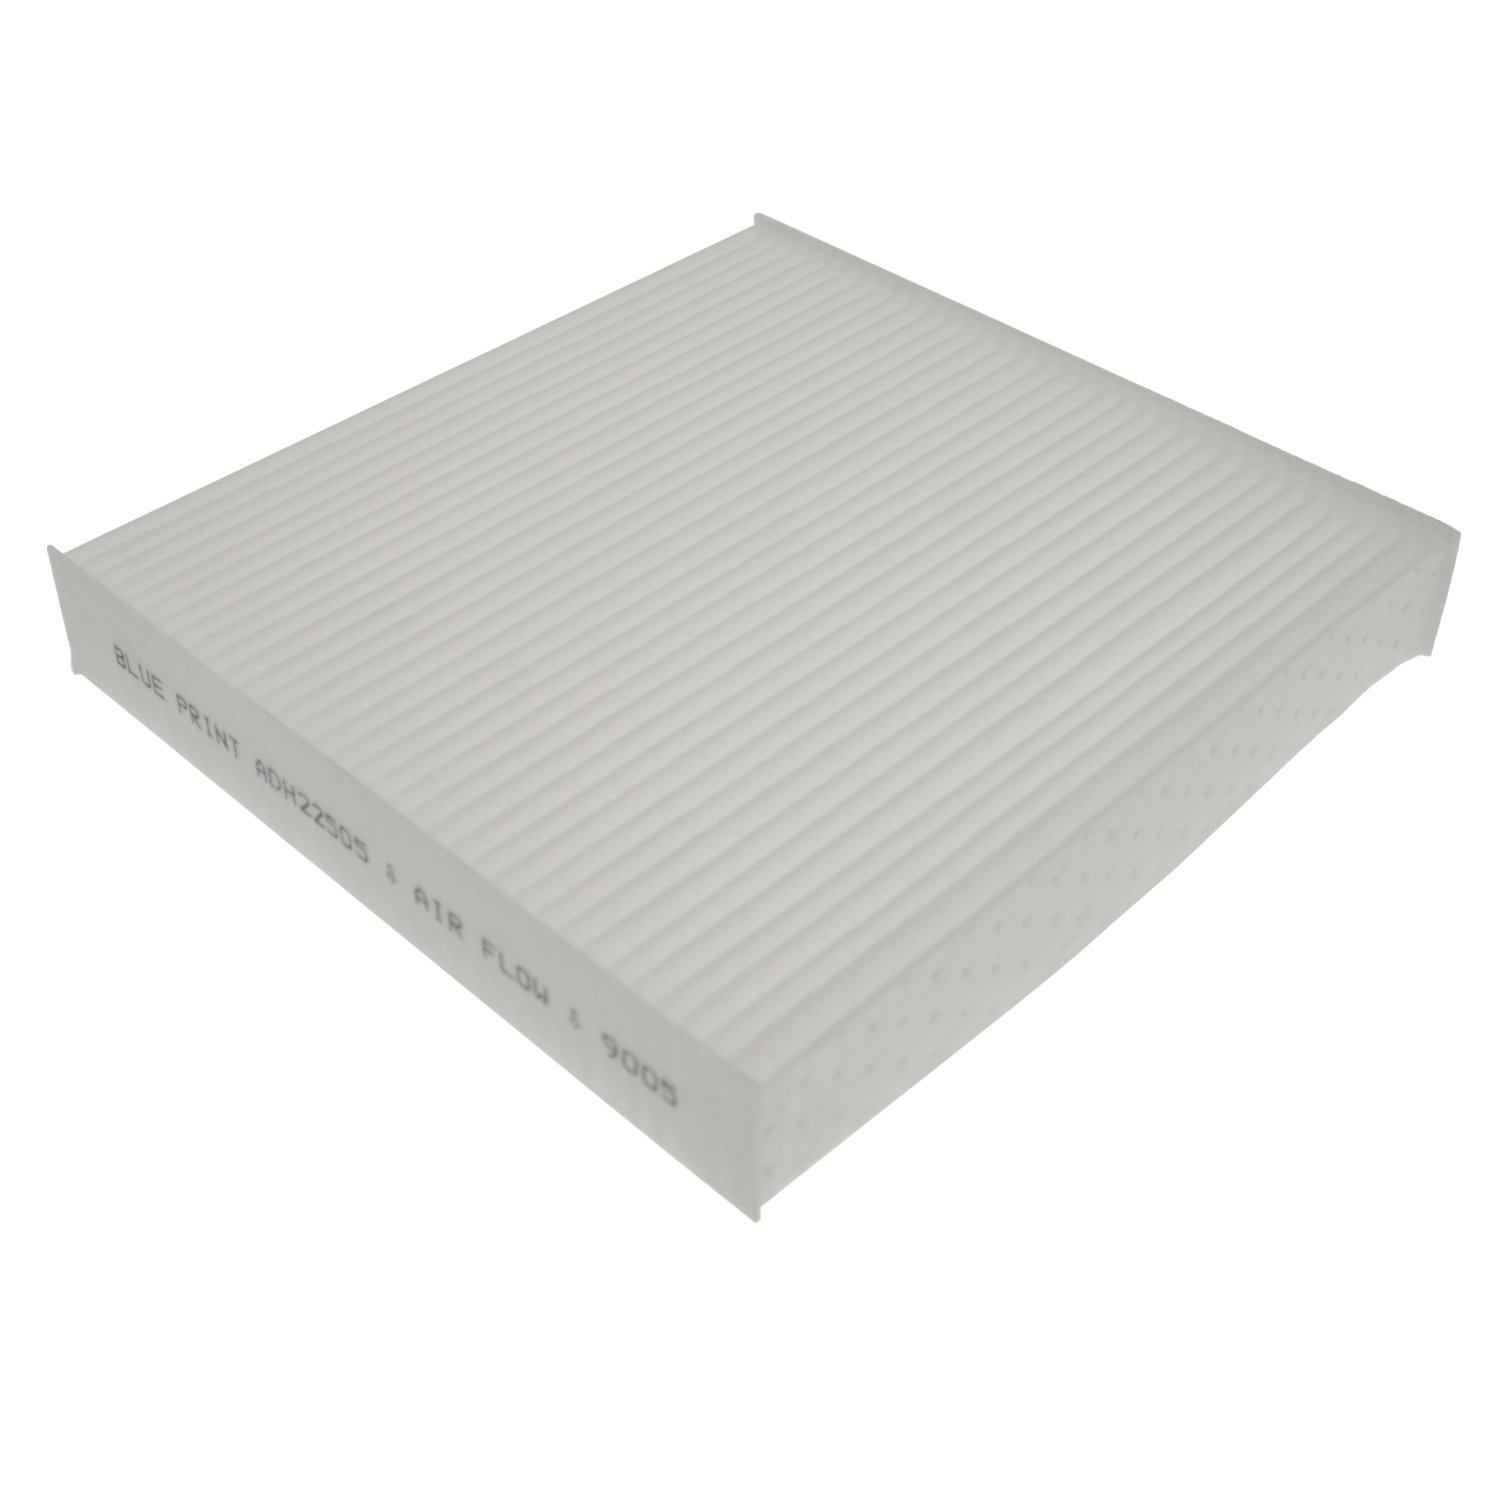 Blue Print ADH22505 Cabin Filter, pack of one